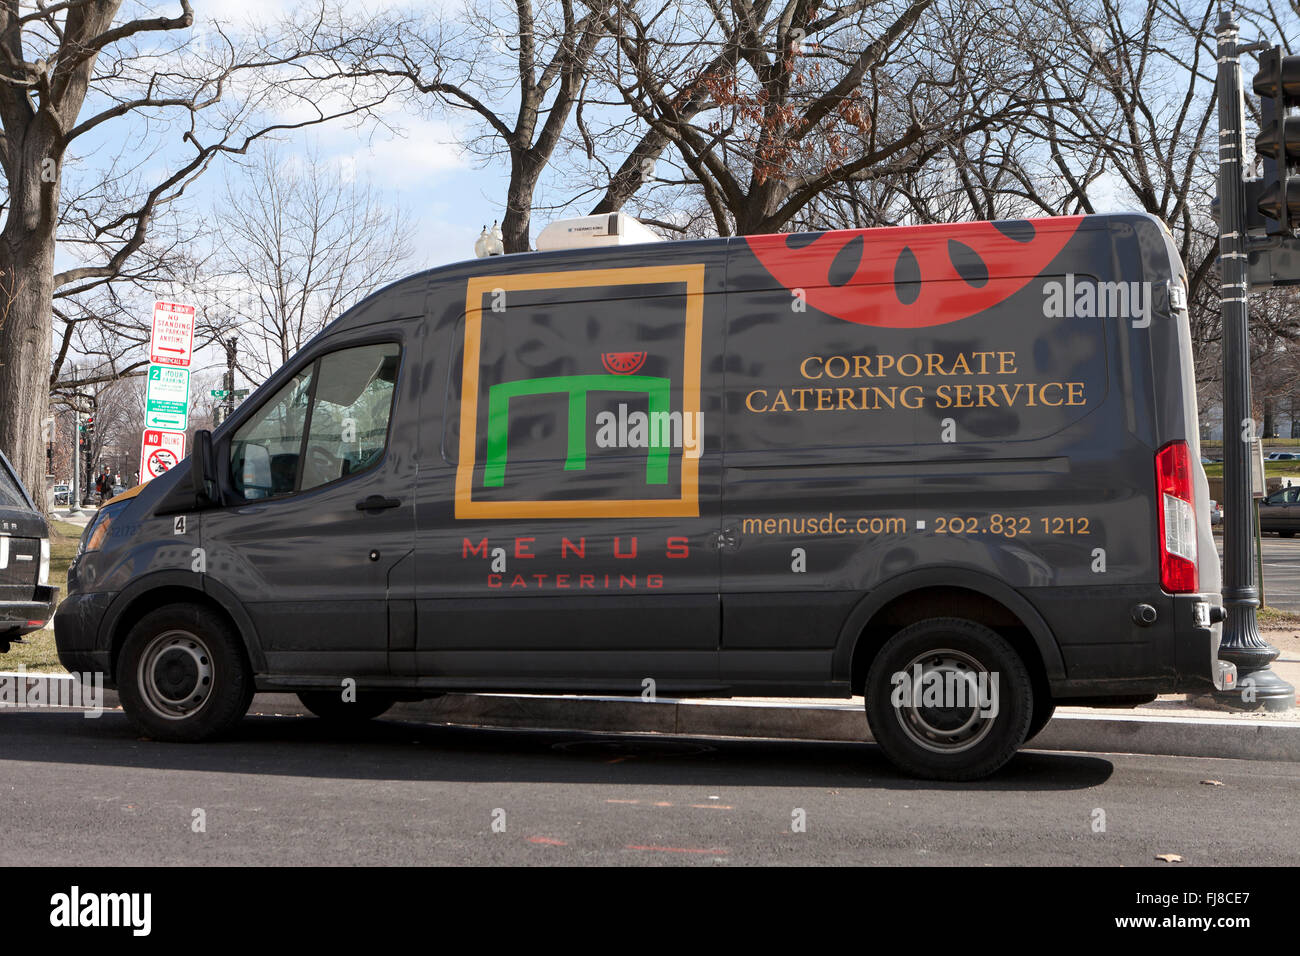 Menus Catering (Corporate catering service) delivery van - USA - Stock Image